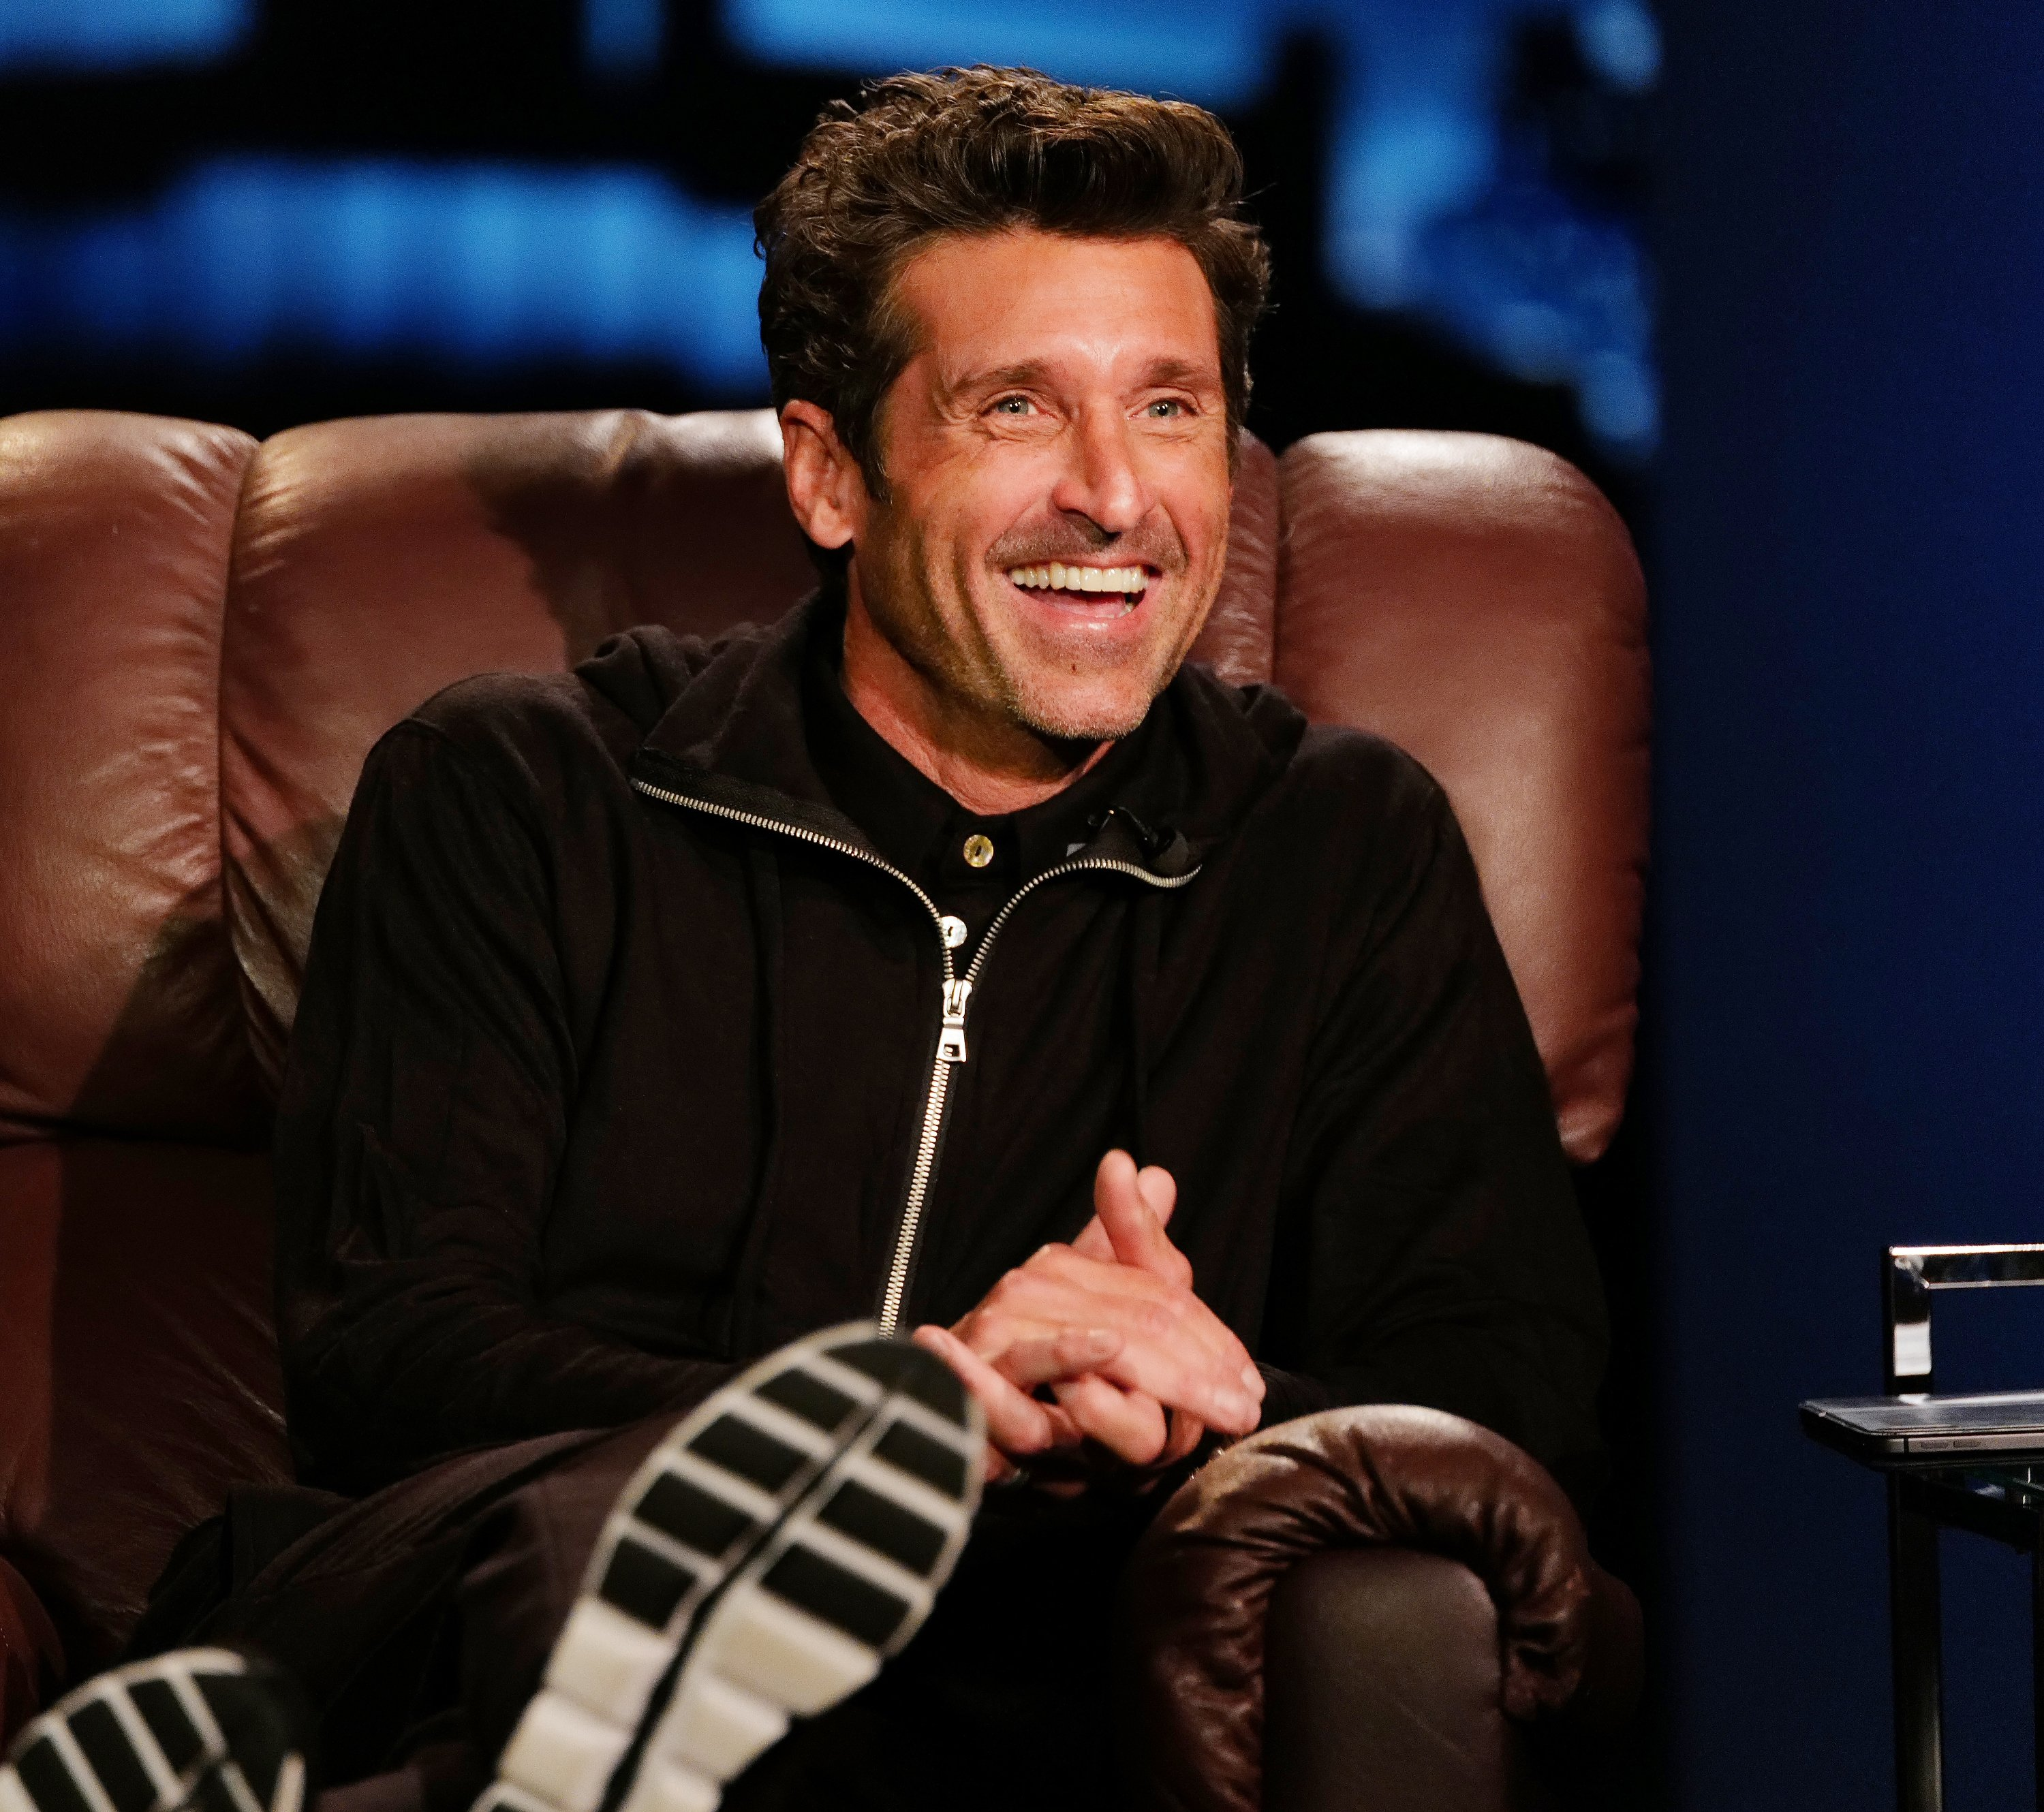 Patrick Dempsey enjoying a laugh during his appearance on Jimmy Kimmel, October 14, 2020. | Photo: Getty Images.